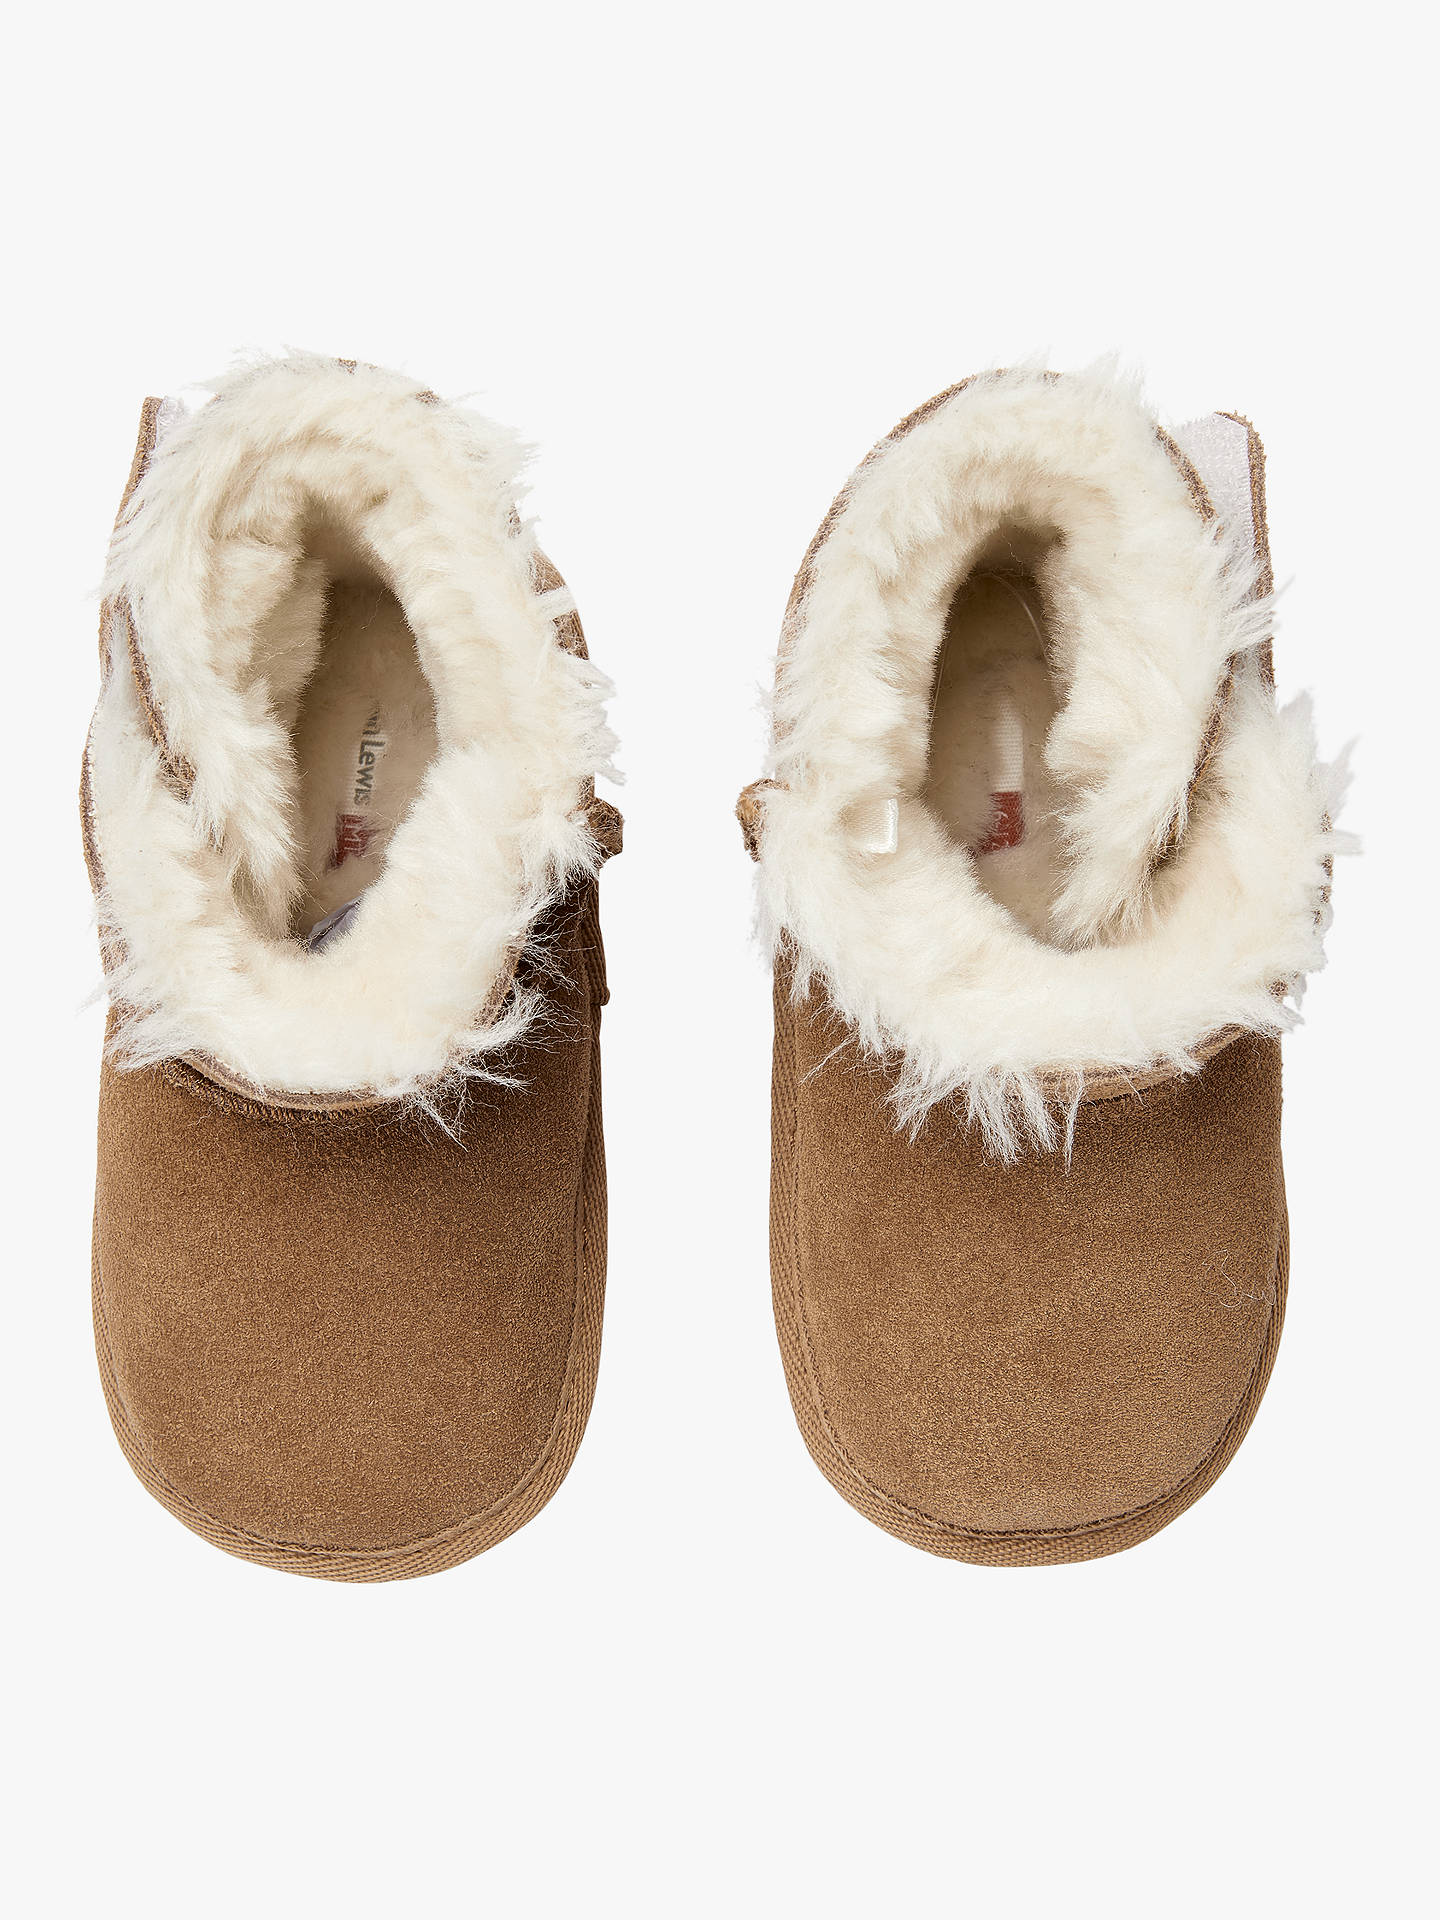 BuyJohn Lewis & Partners Baby Faux Sheepskin Booties, Chestnut, 0-3 months Online at johnlewis.com